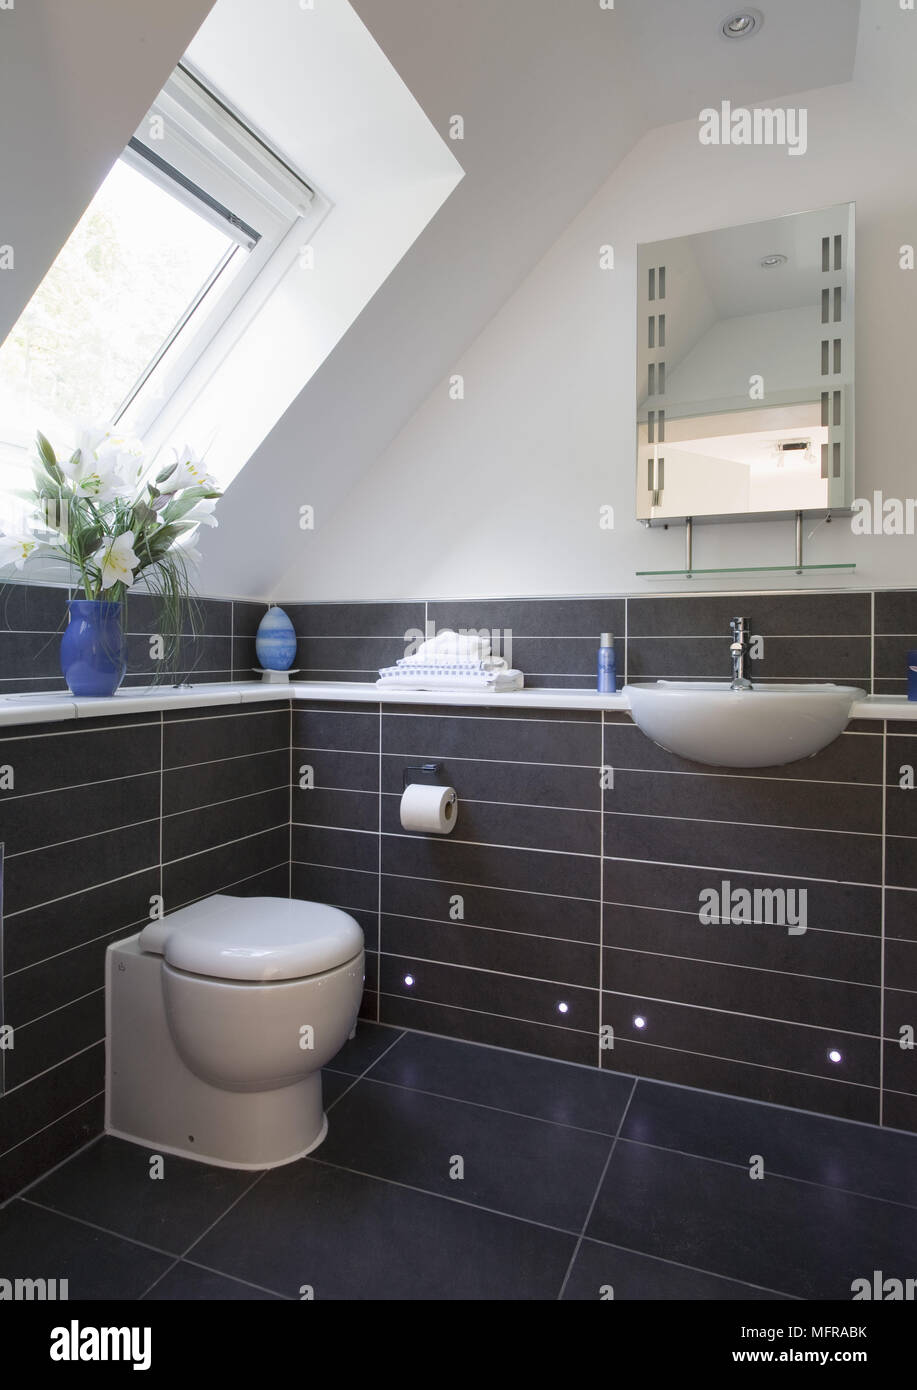 Washbasin Set In Unit Next To Low Level Toilet With Concealed Cistern In Contemporary Bathroom Stock Photo Alamy